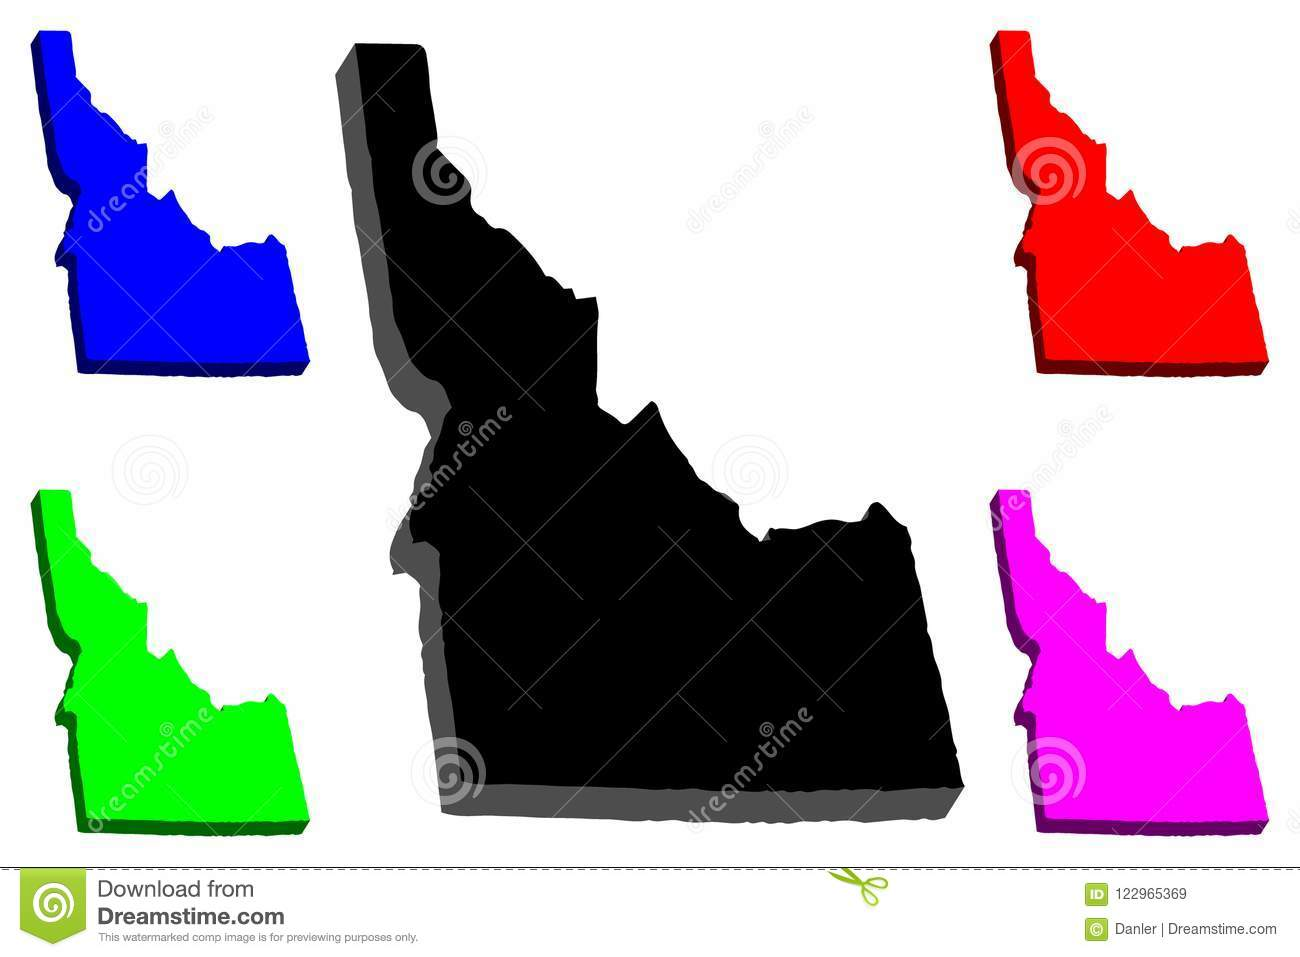 Purple State Map.3d Map Of Idaho Stock Vector Illustration Of Isometric 122965369